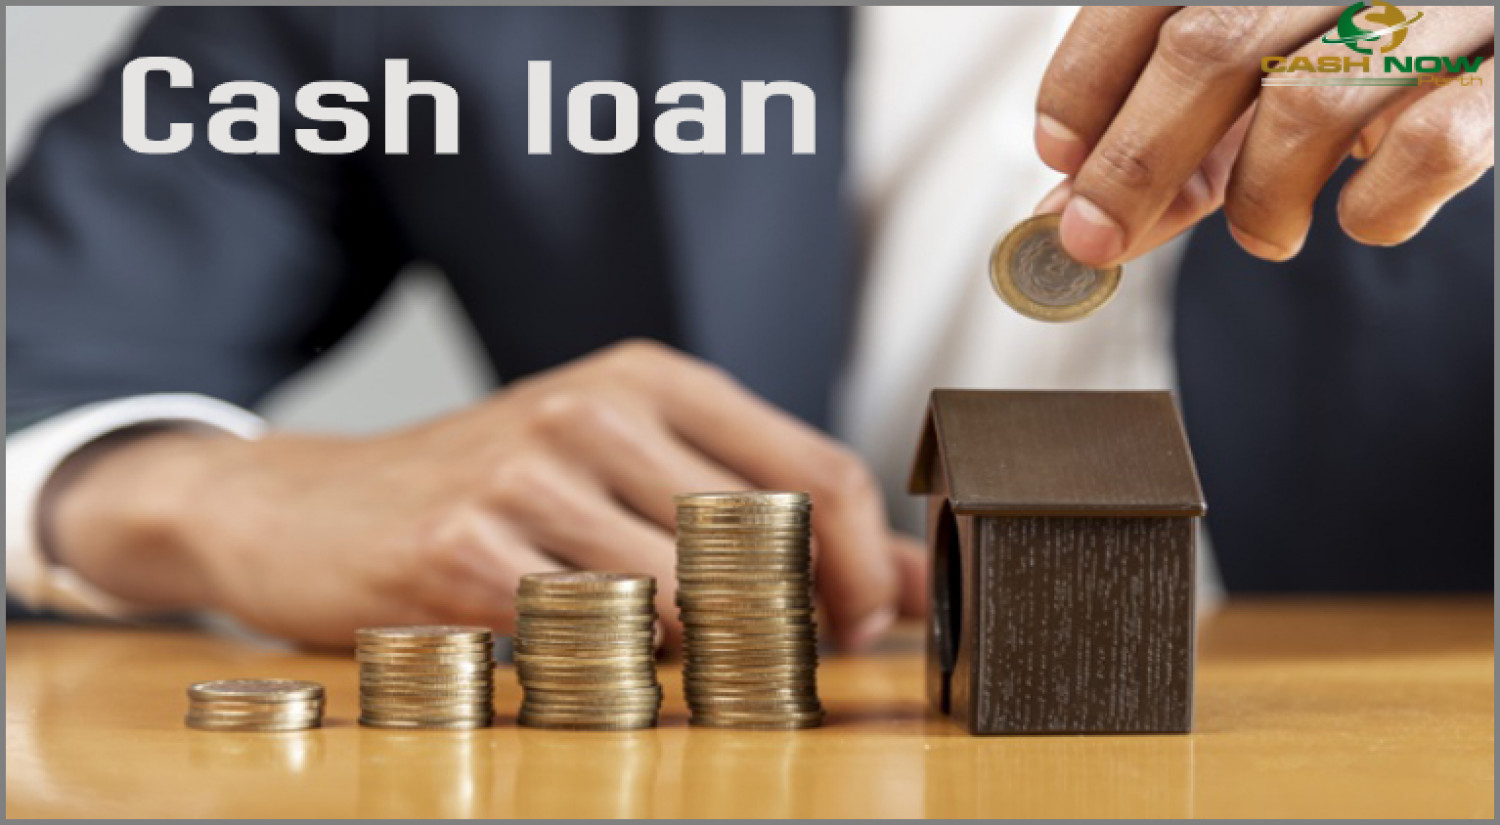 Cash loan – Cash quickly for Instant Needs Infographic